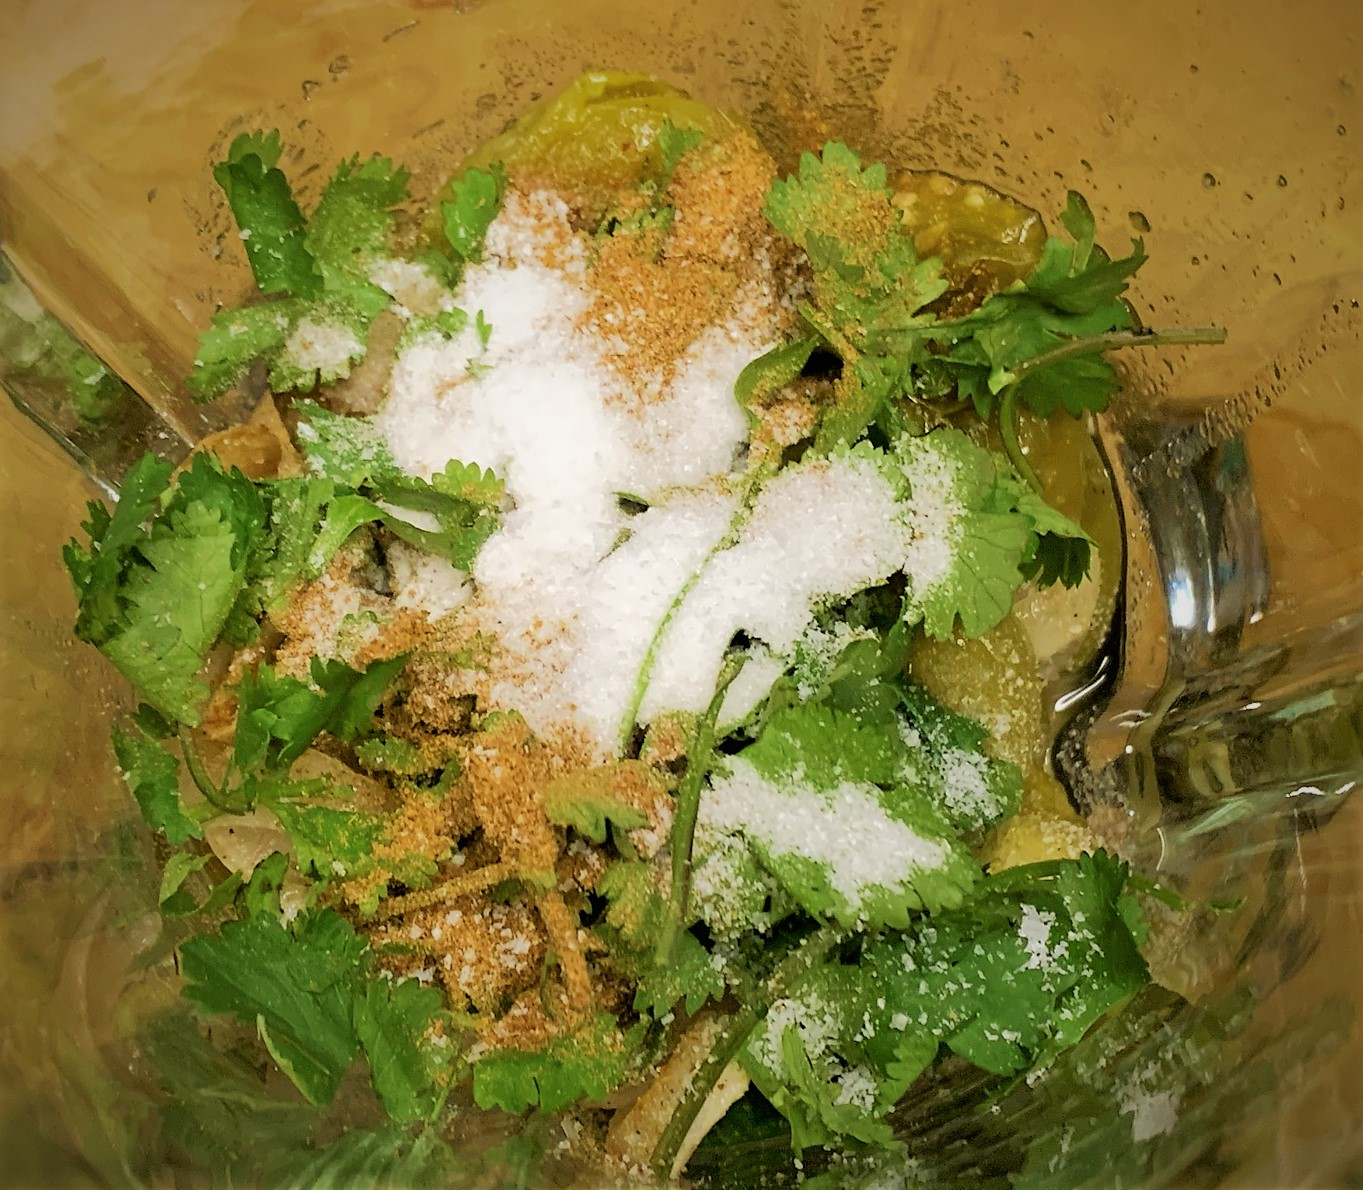 Adding the Cilantro, Cumin and Salt added to our Salsa Verde Ingredients in a blender